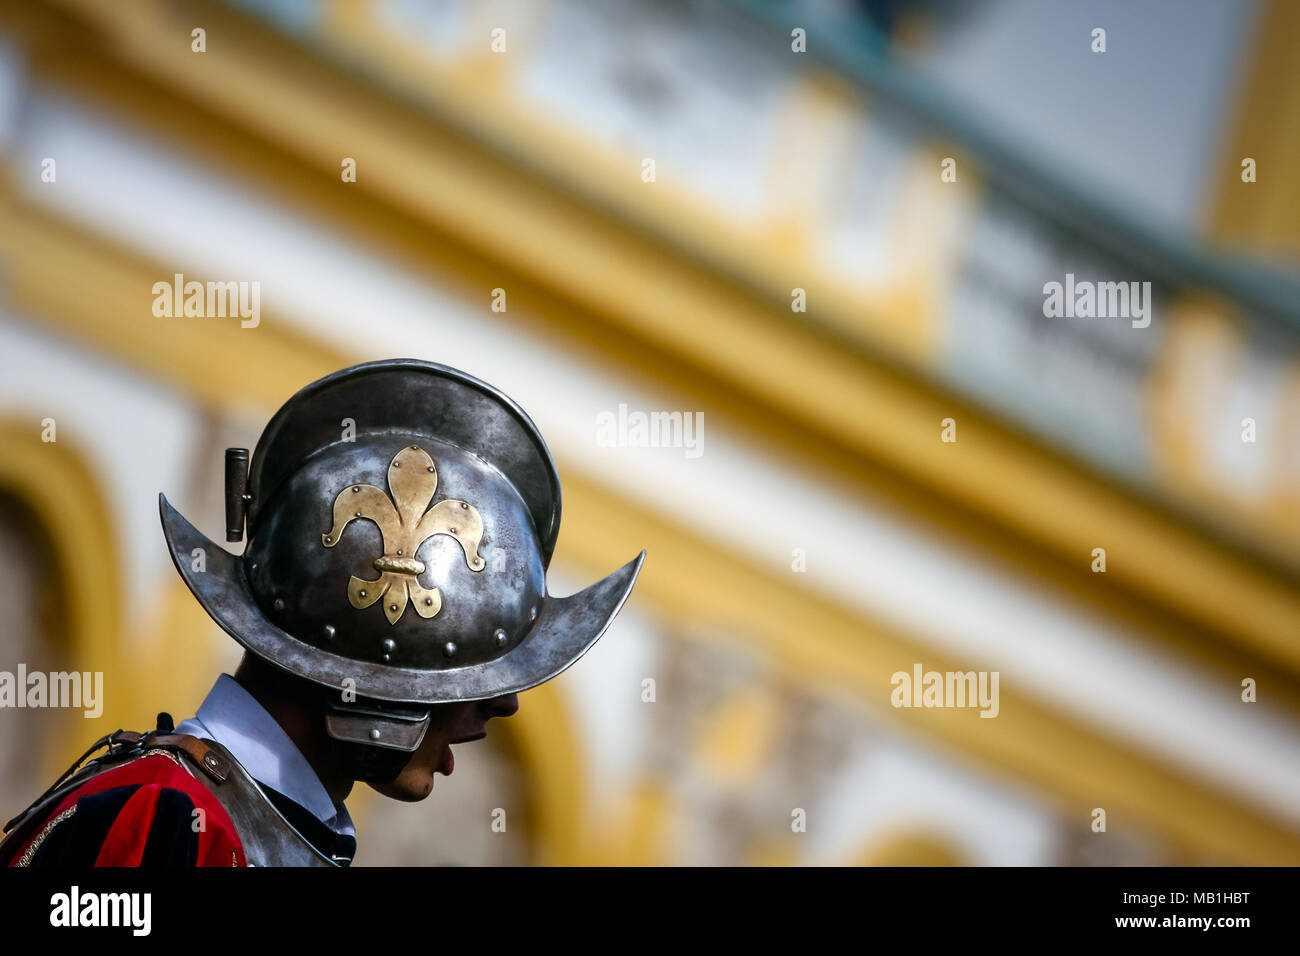 Royal guard wearing a helmet with the Fleur de Lis sign, at Wilanow Royal Palace Days of Wilanow. WARSAW, POLAND - SEPTEMBER 13, 2009 Stock Photo